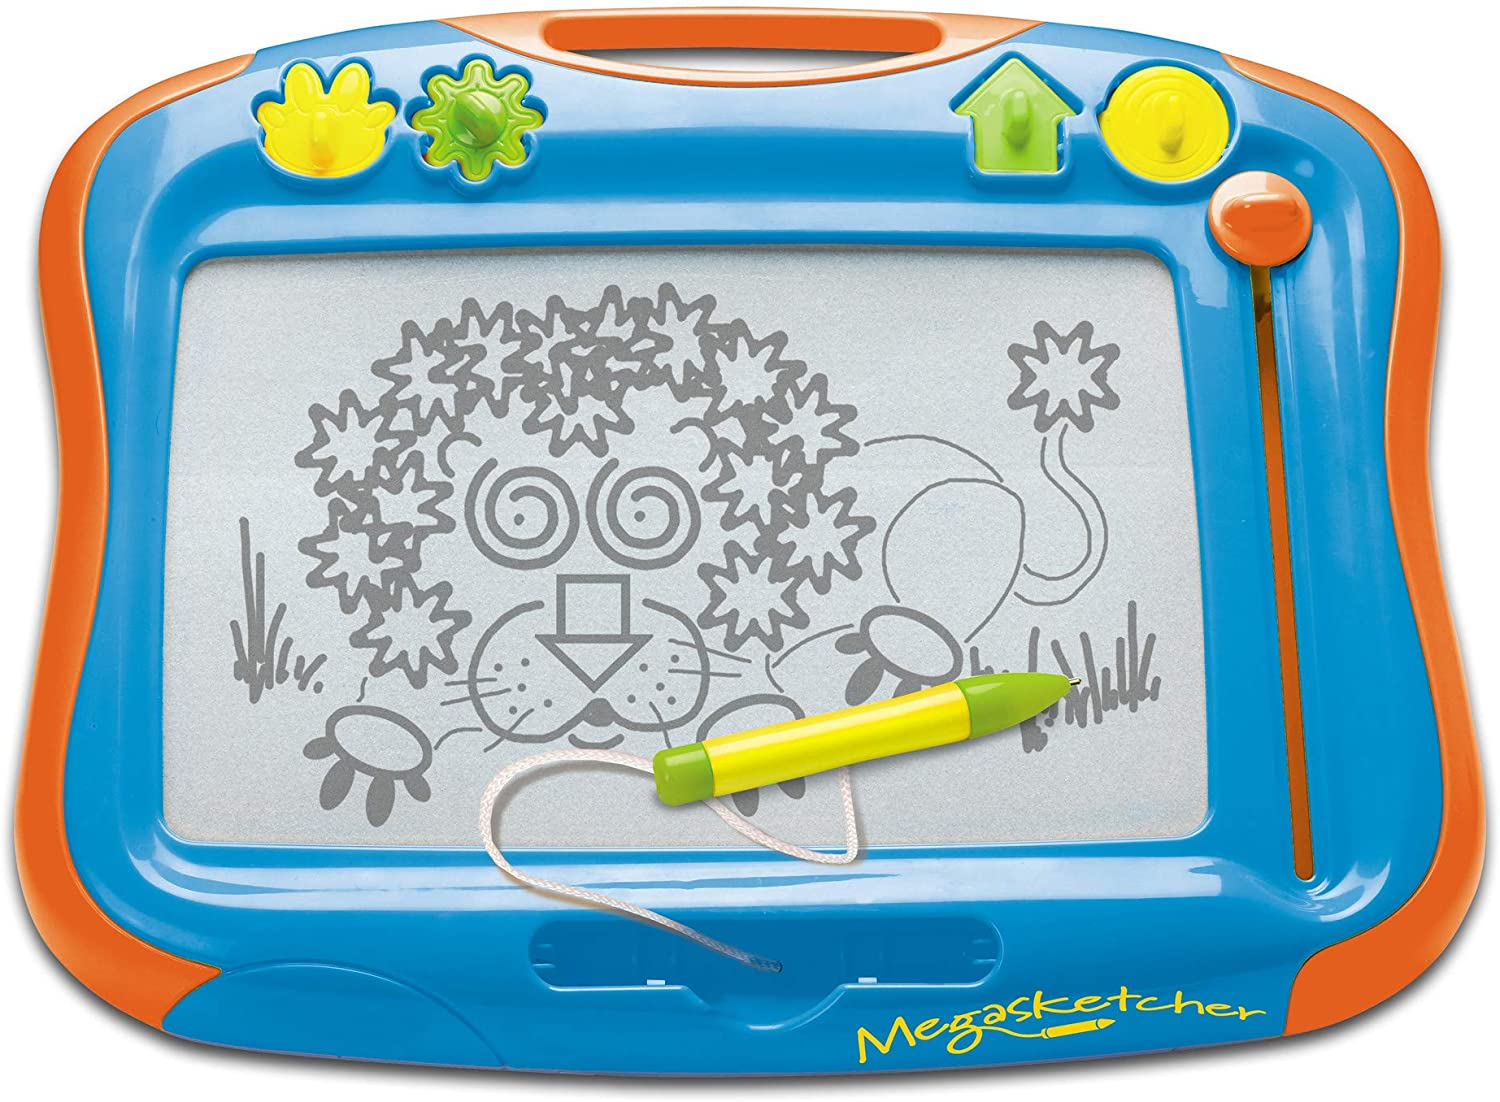 TOMY Megasketcher Magnetic Drawing Board